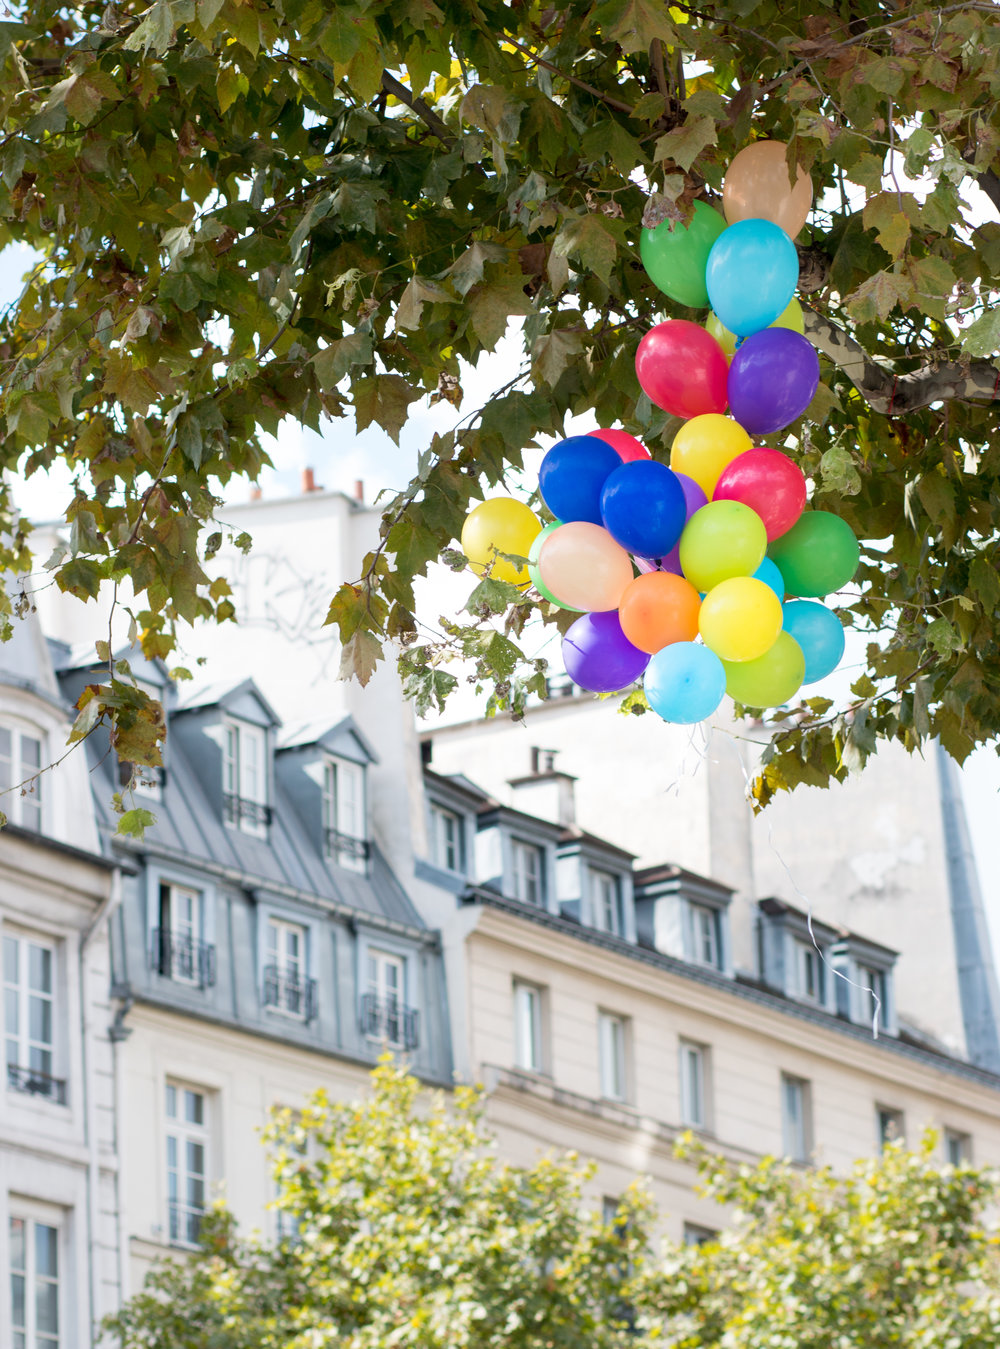 ballons in parisian apartments